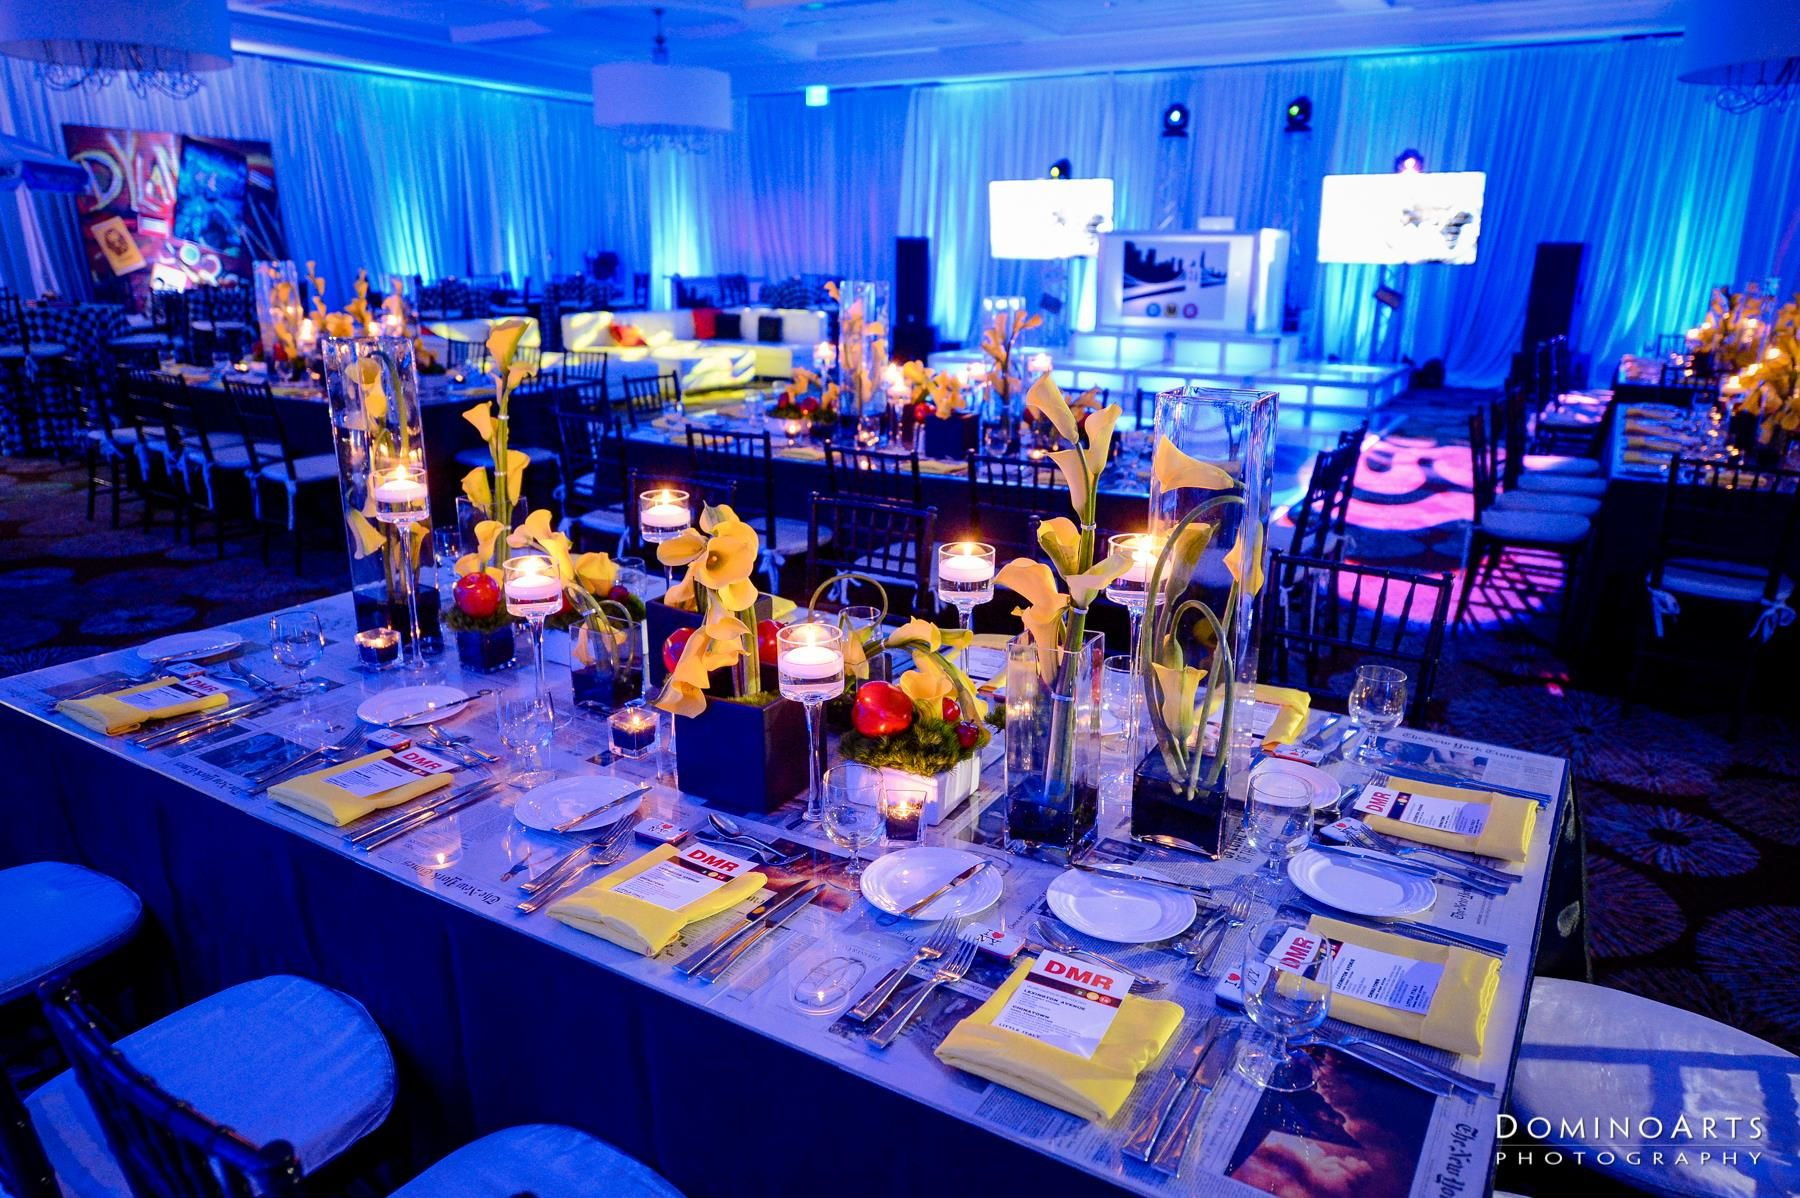 If You Need Some Great Ideas For A New York Theme Party Bar Mitzvah Lizi Of Linzi Events Has Fabulous Photos